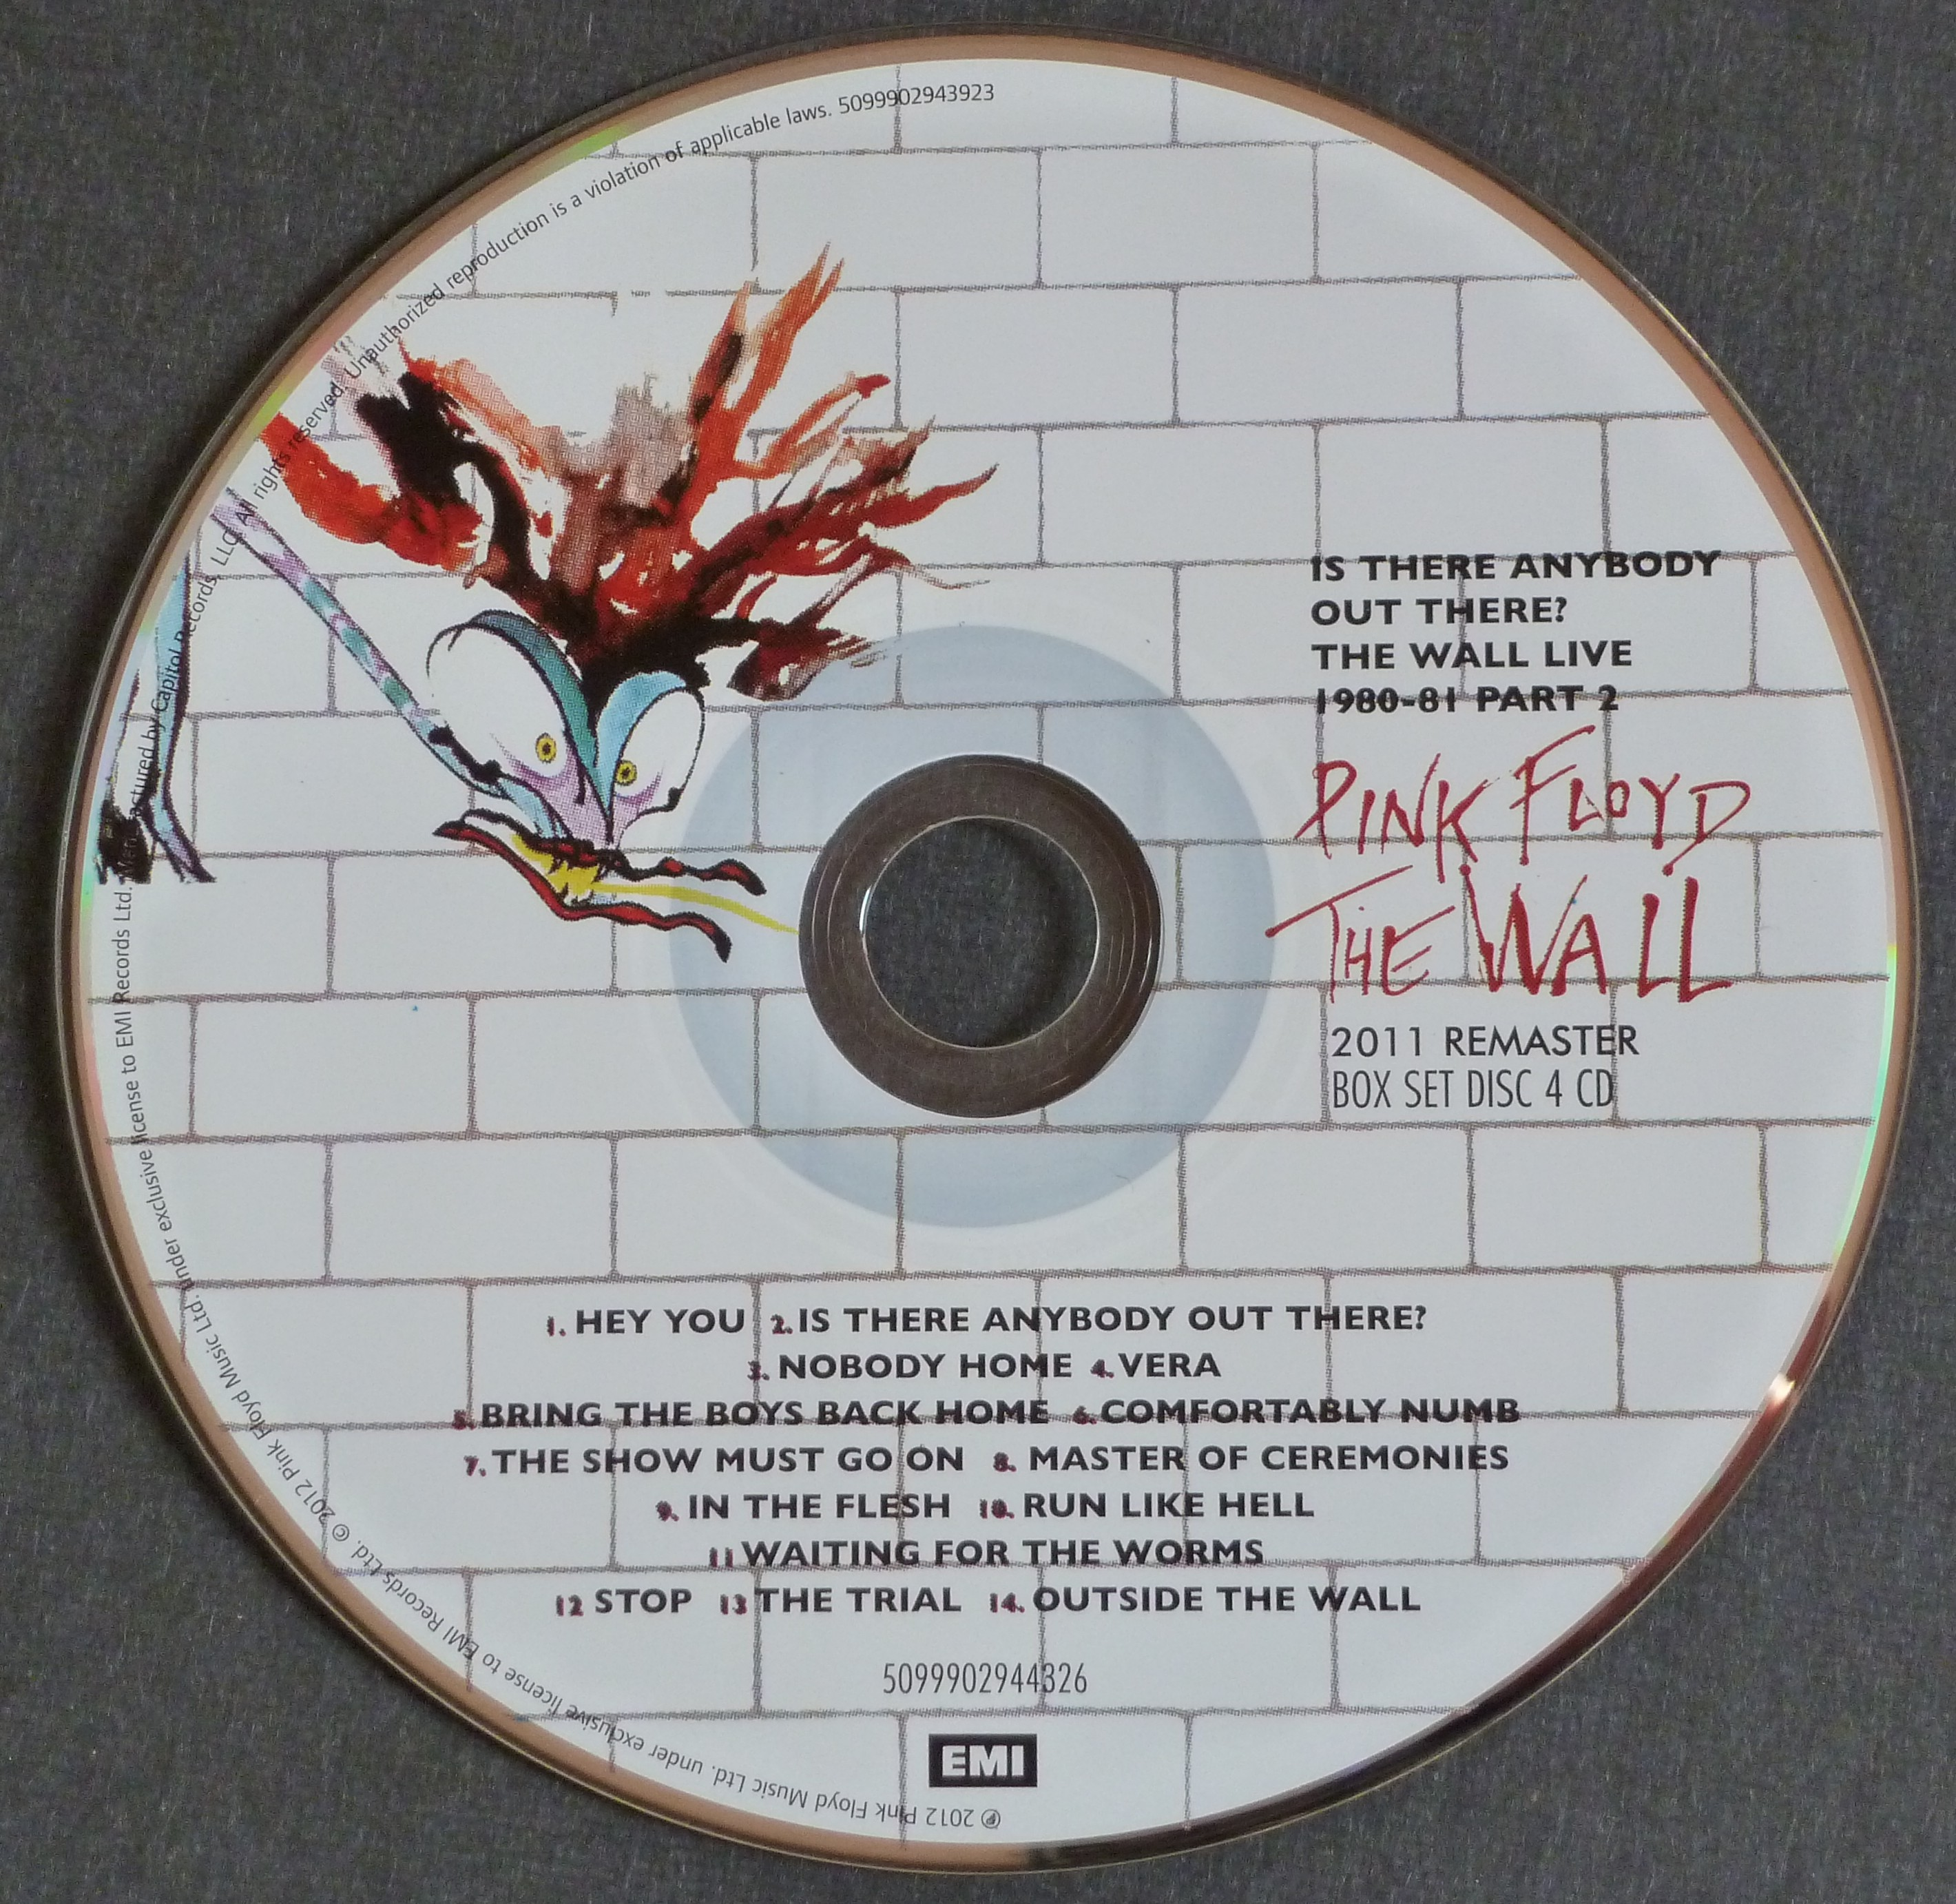 An in-depth look at Pink Floyd's 'the Wall' Immersion box